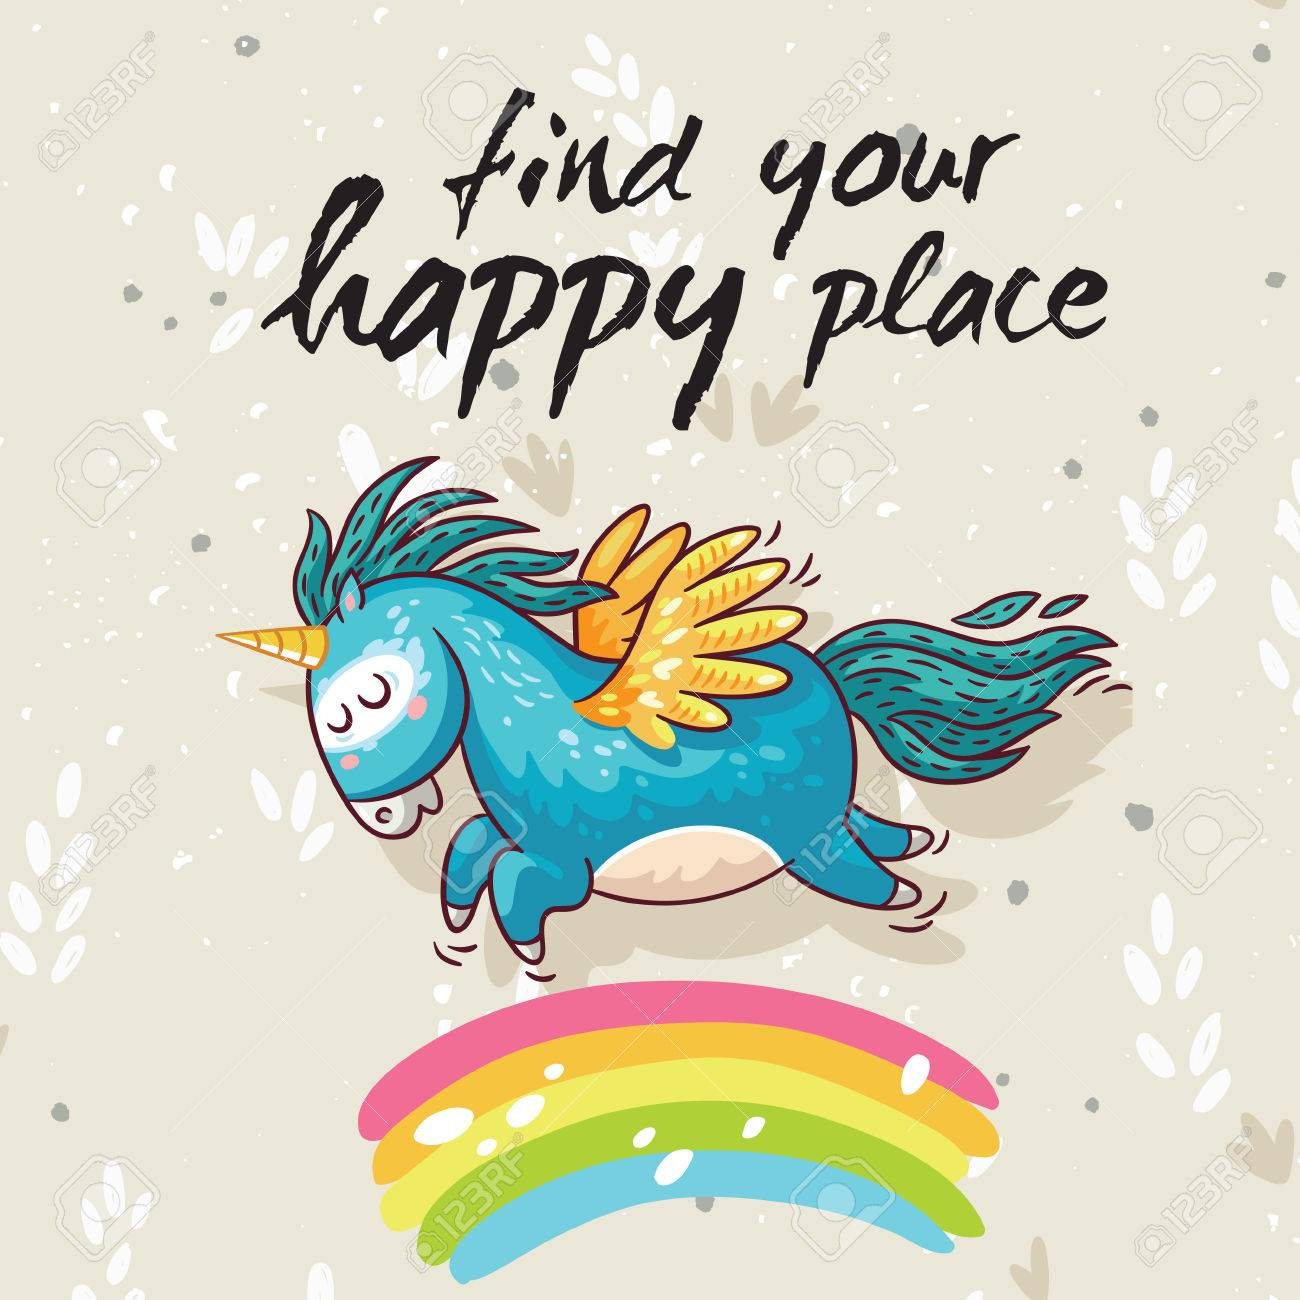 Vector card with unicorn, rainbow, stars, decor elements and text Find your happy place. This illustration can be used as a greeting card, poster or print - 52886187